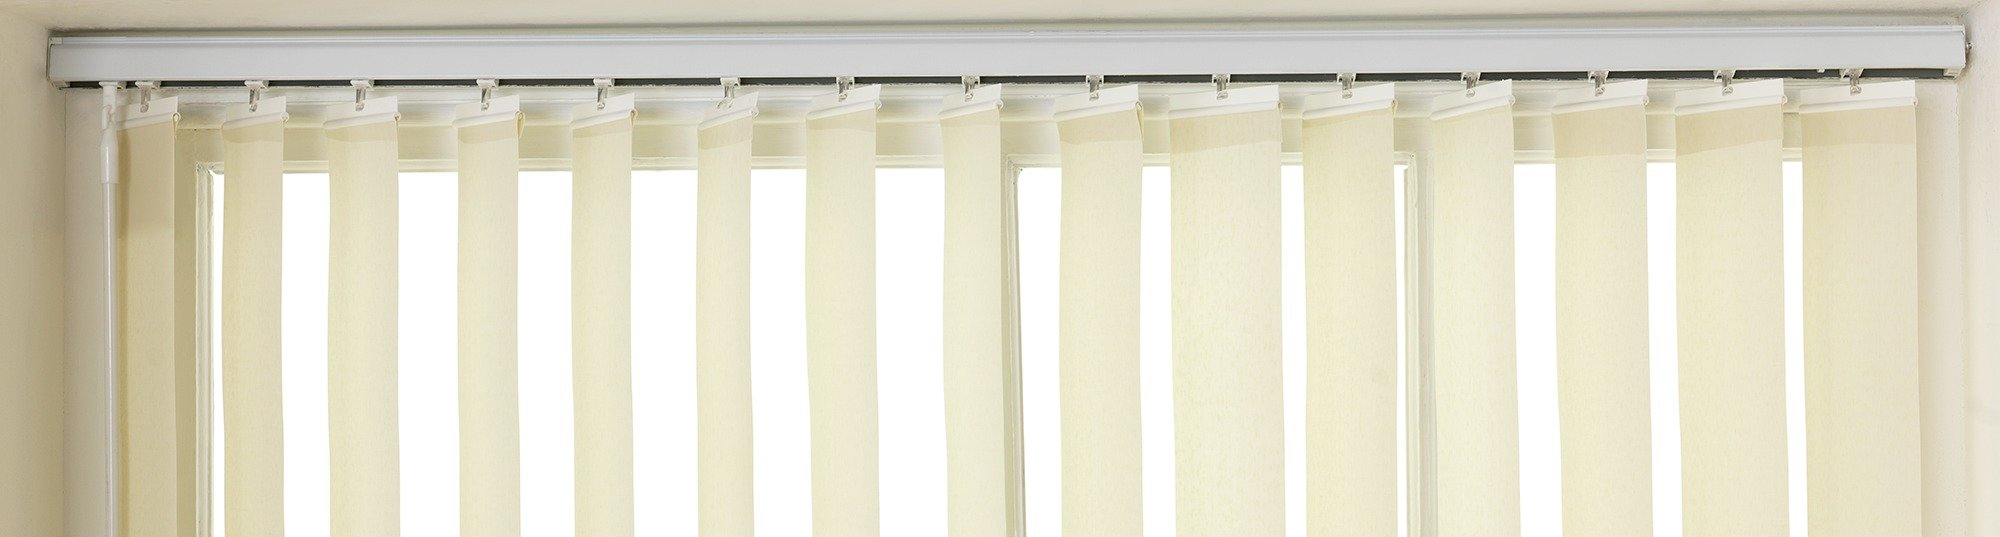 Argos Home Vertical Blind Headrail - 3ft